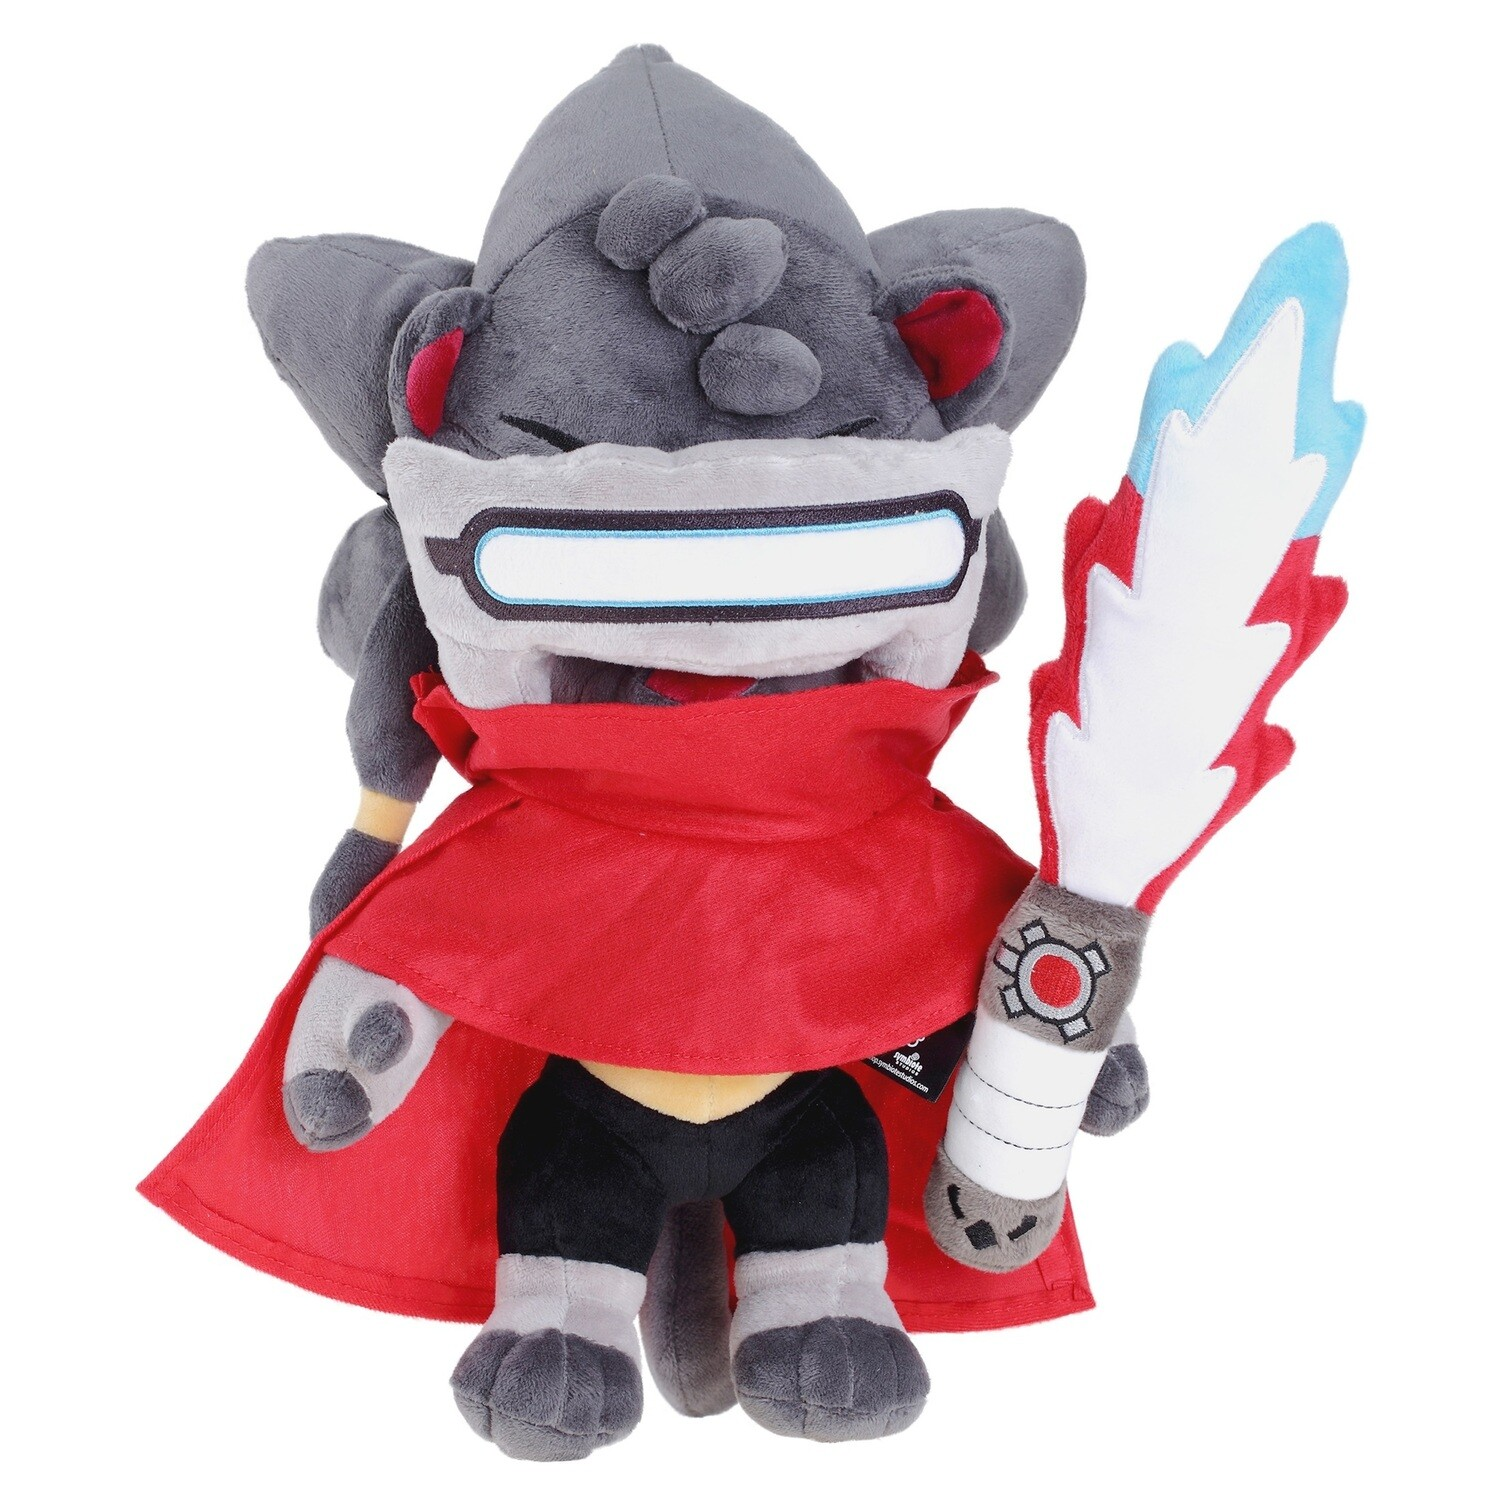 Rivals of Aether: Clairen Plush and Pin with DLC